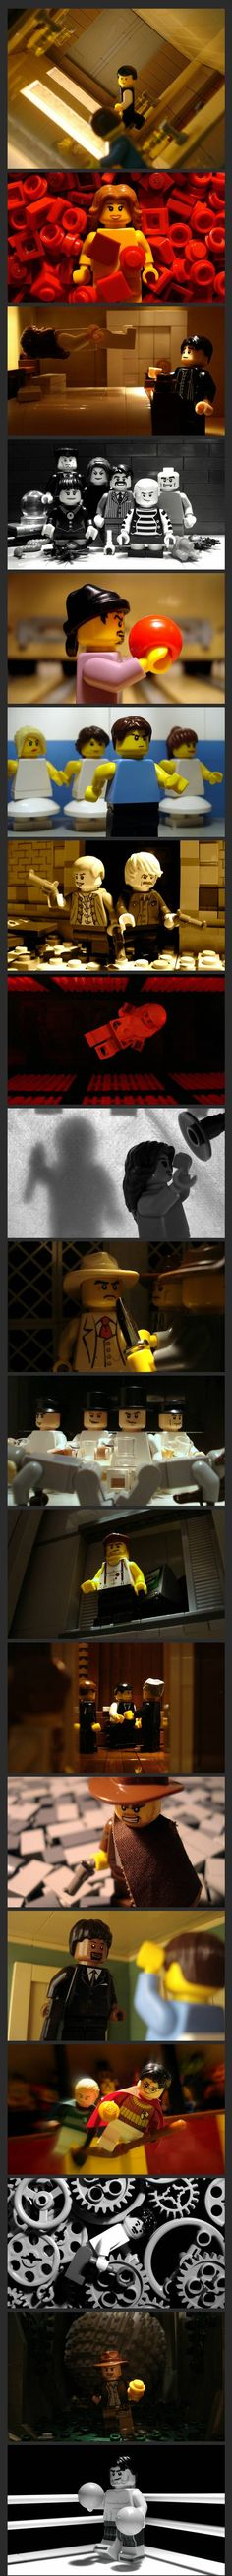 Lego movie scenes SO CUTE! Love the Inception and Psycho ones the best, so awesome!